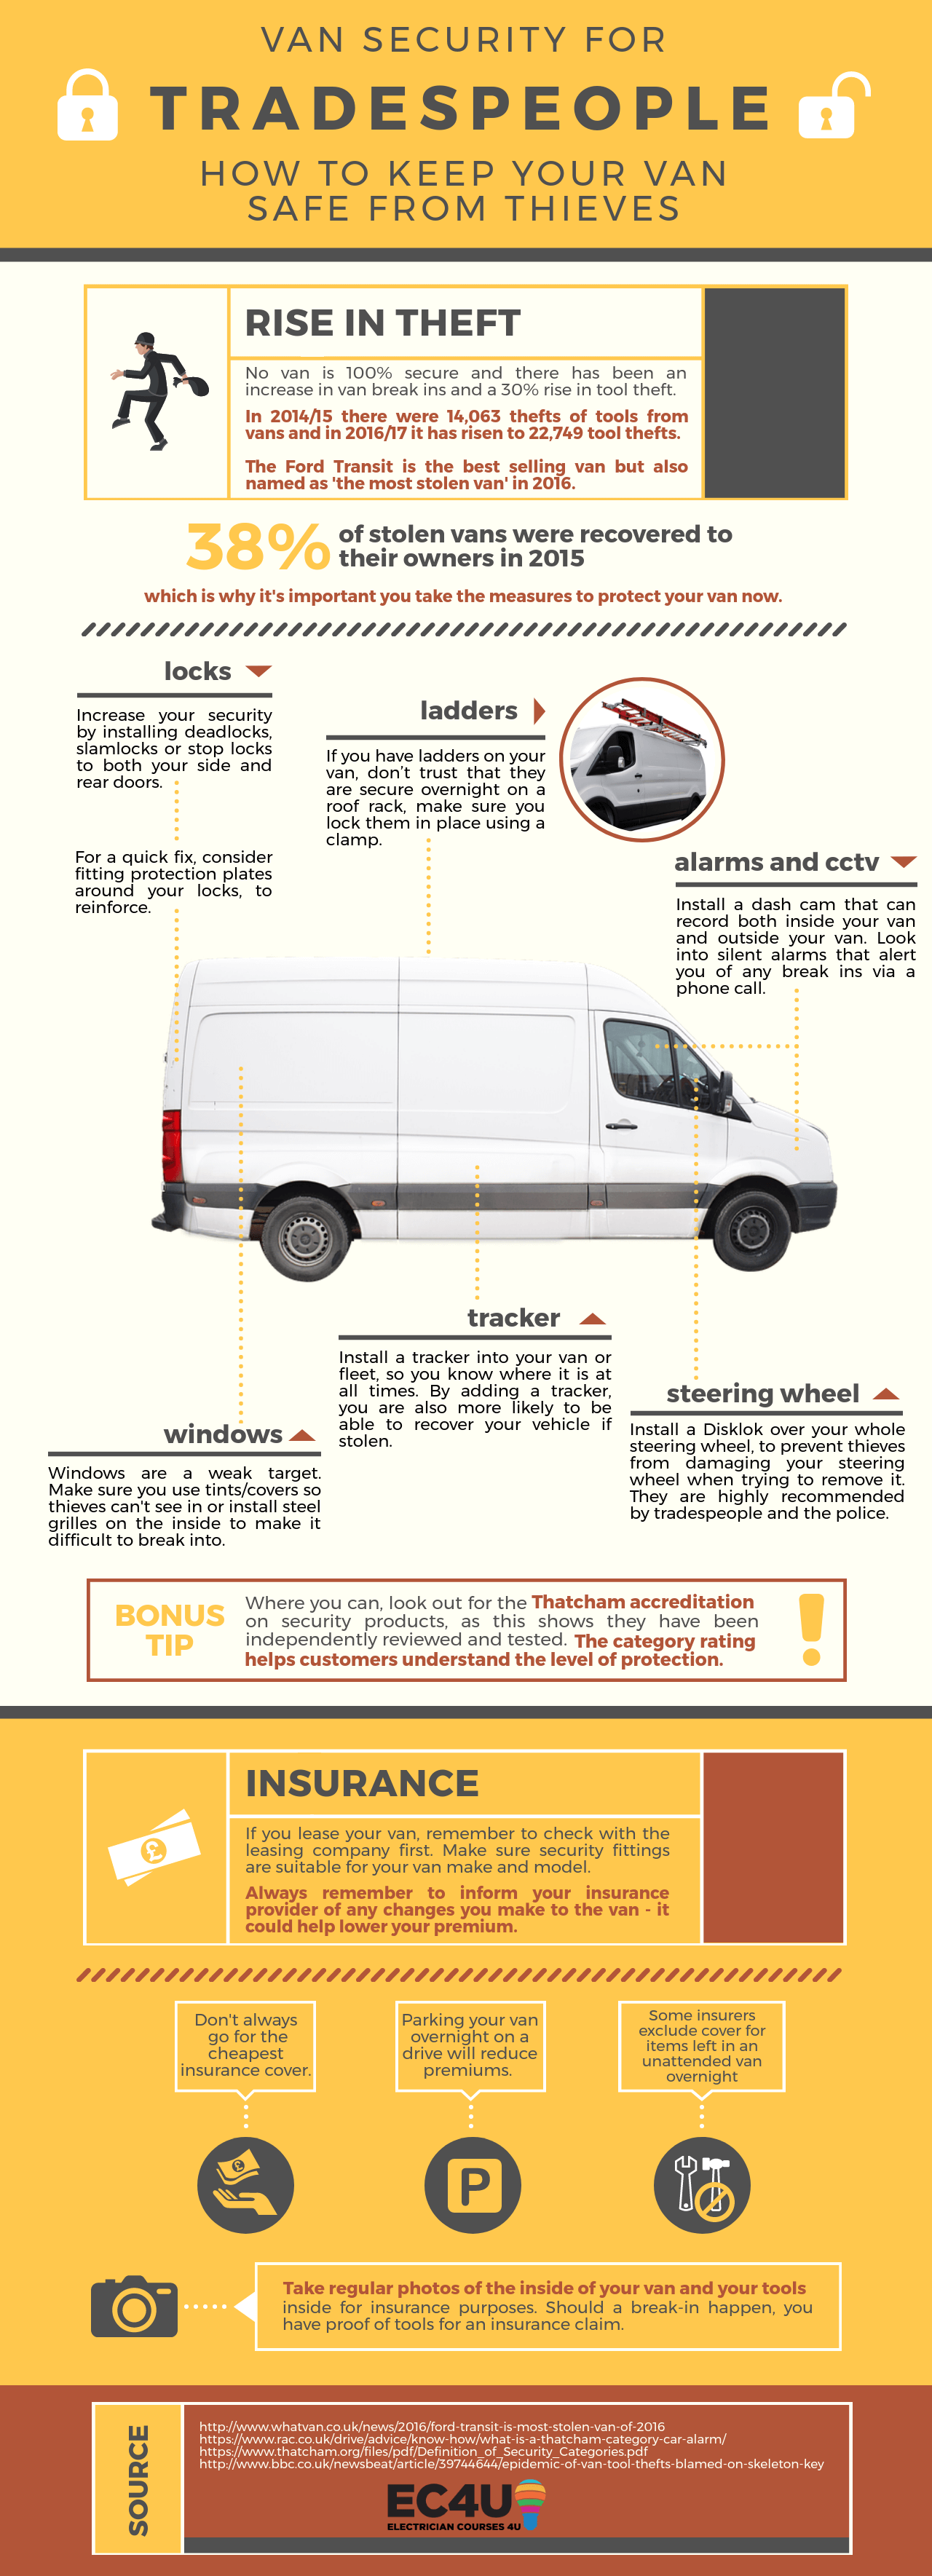 Van Security For Tradespeople Infographic Security Tips